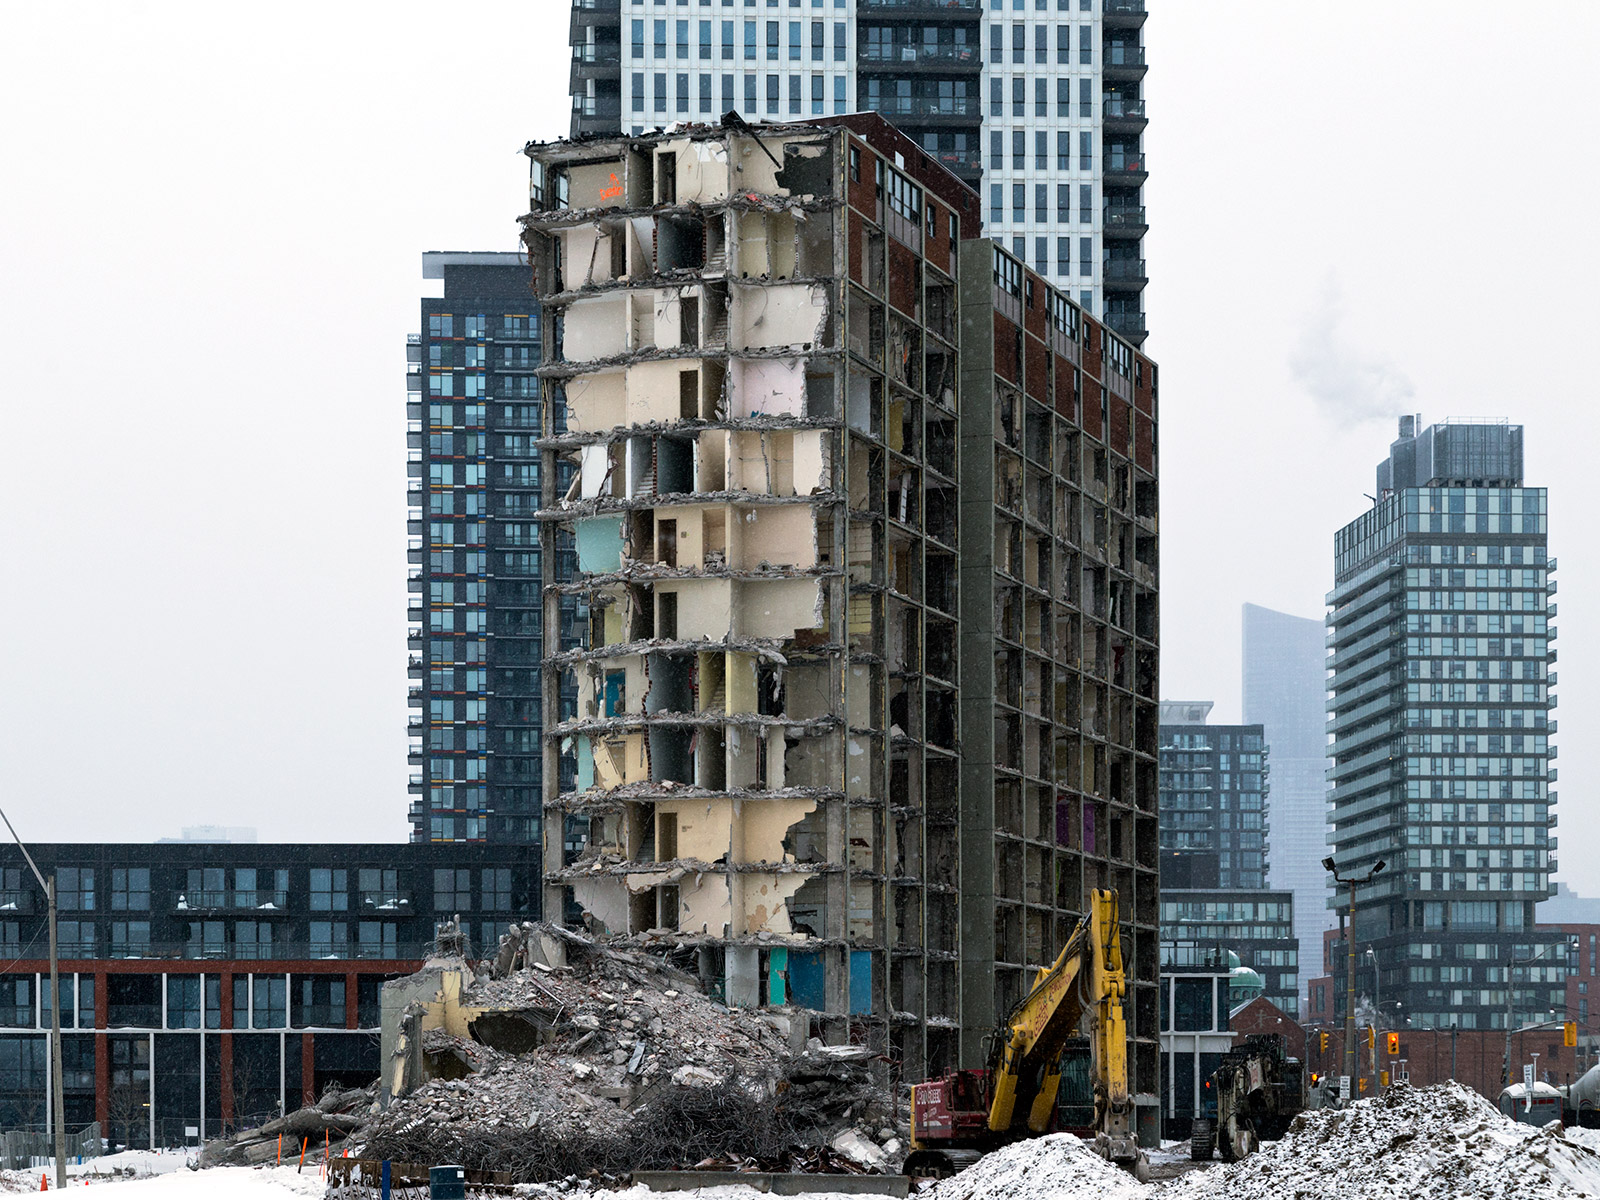 20150208. New and old contrast vividly in Toronto's Regent Park